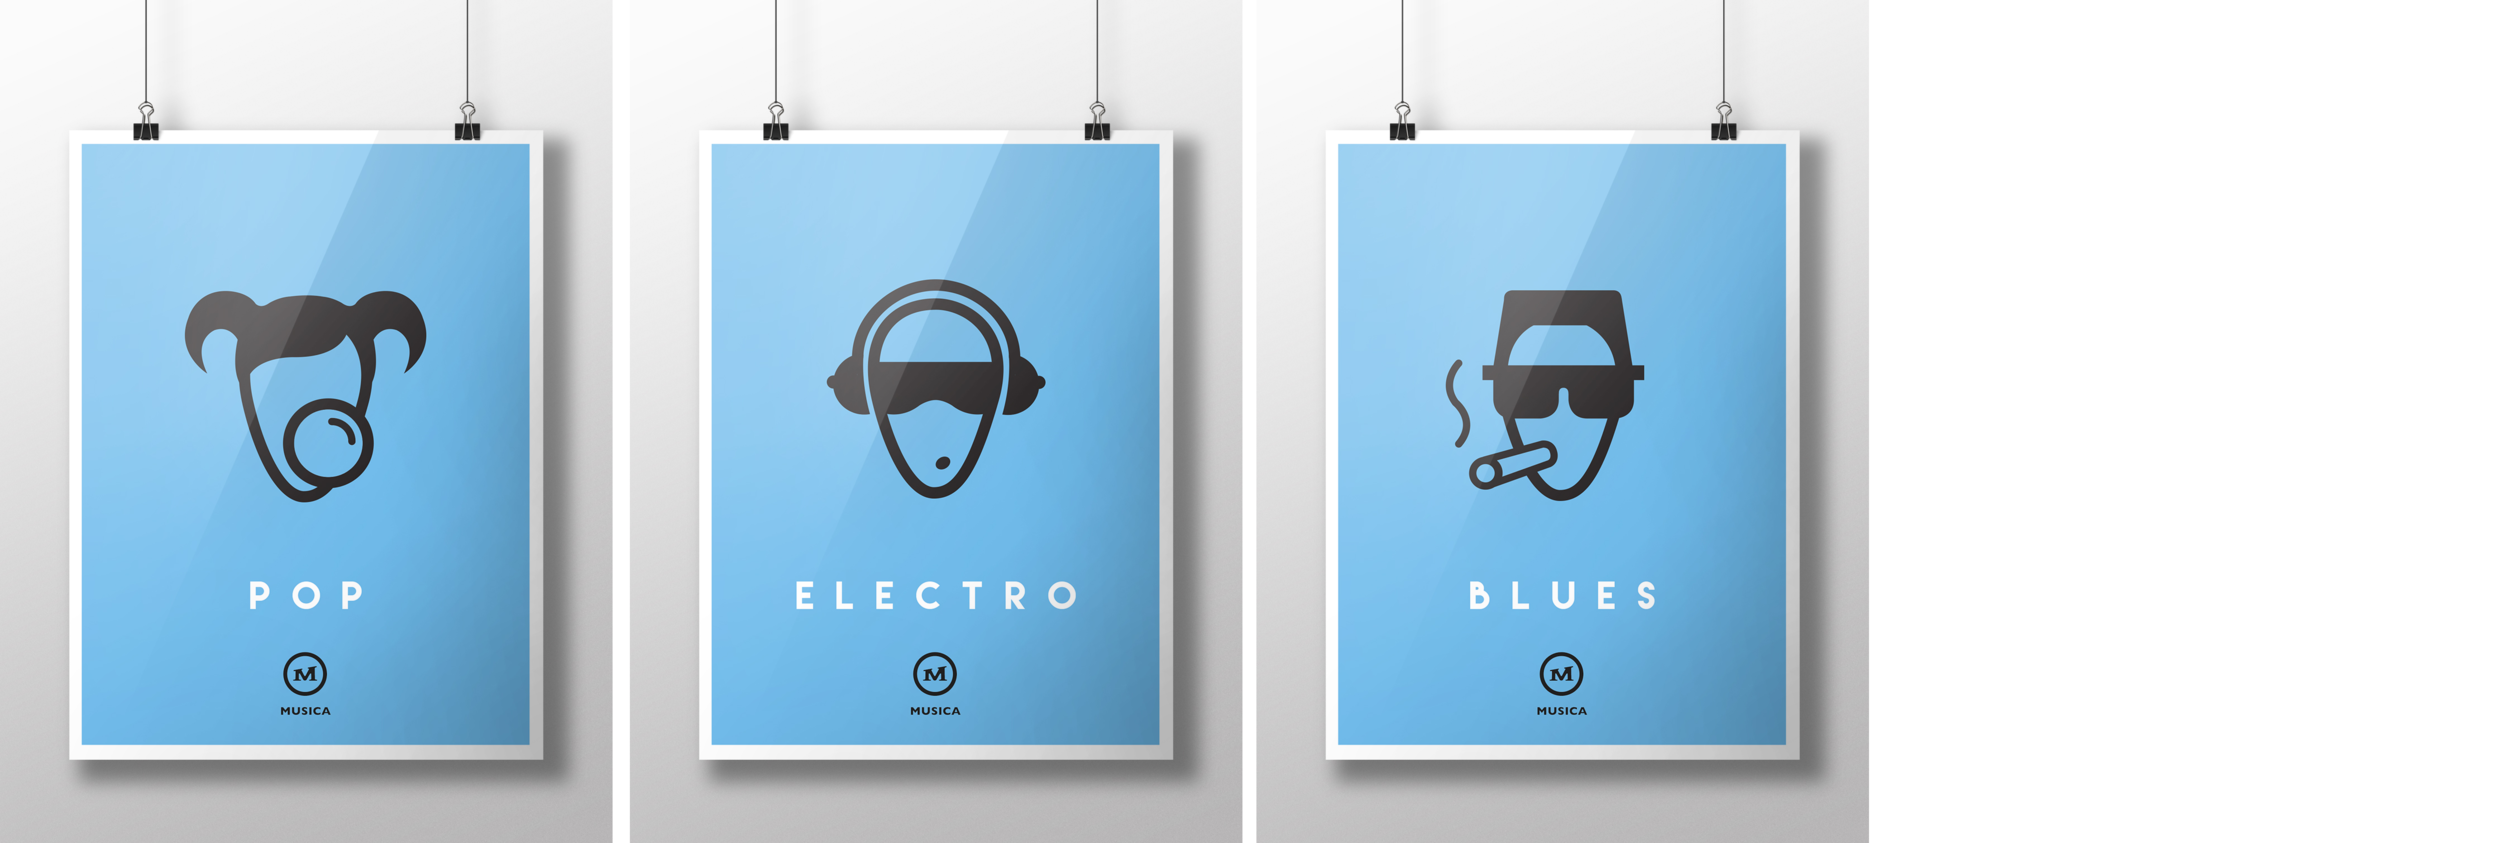 POSTER MUSIC ICONS 03-01-01.png